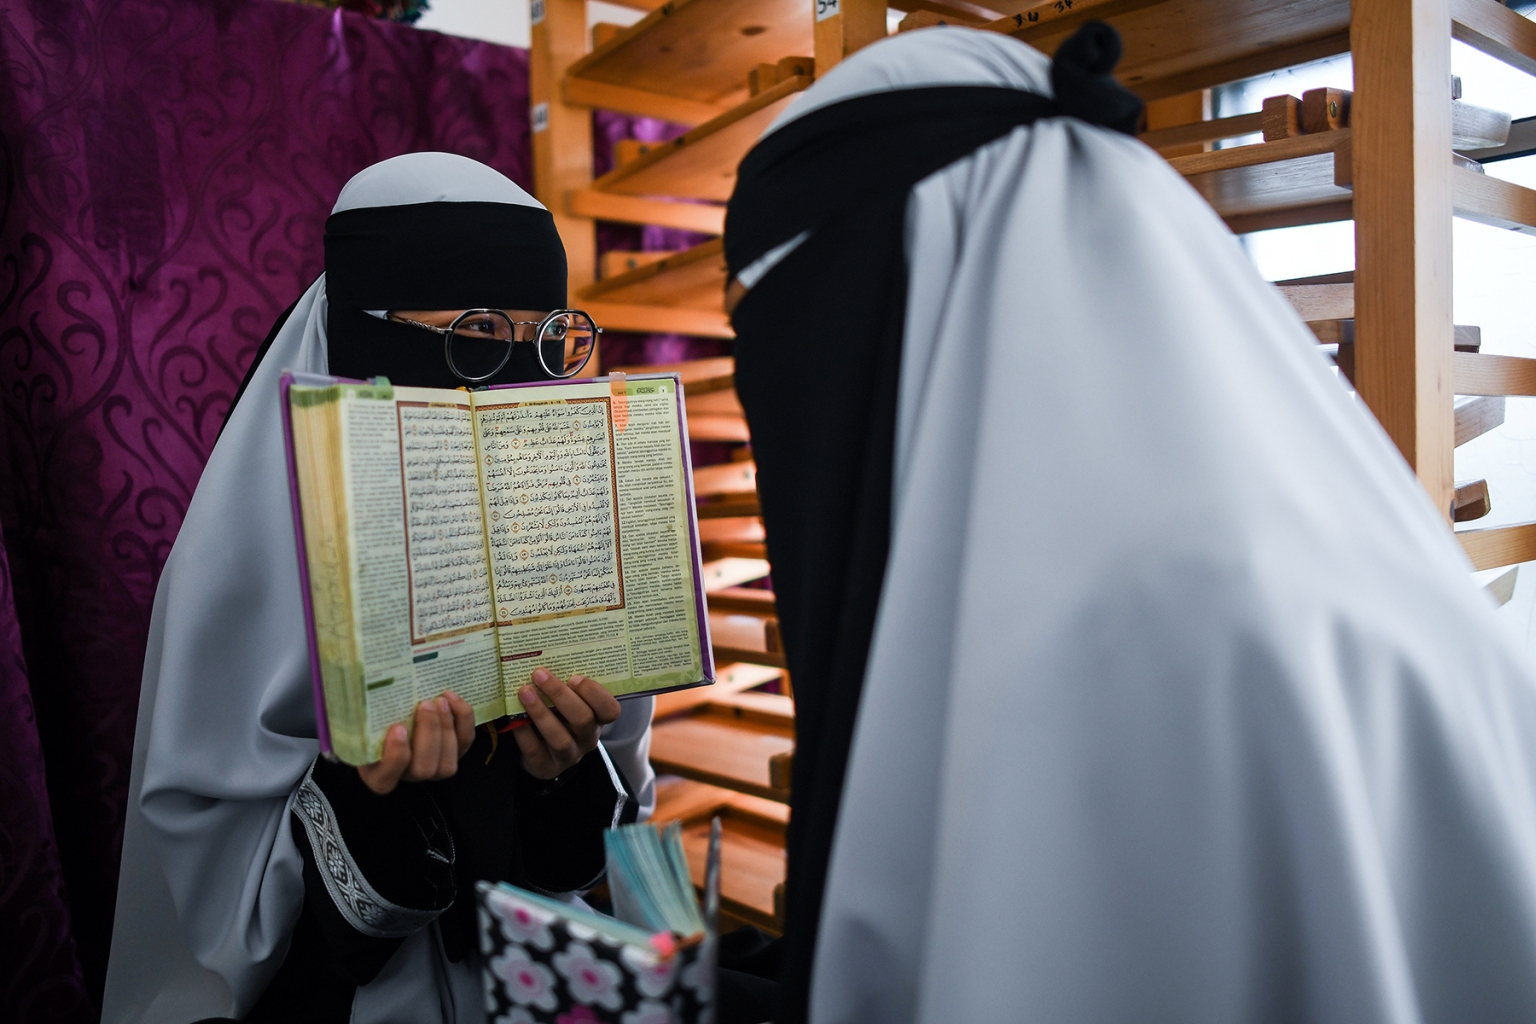 Muslim students read copies of the Quaran to observe Nuzul Quran, when the beginnings of the holy book were revealed to the Prophet Mohammed, in a mosque in Bentong on May 22. MOHD RASFAN/AFP/Getty Images